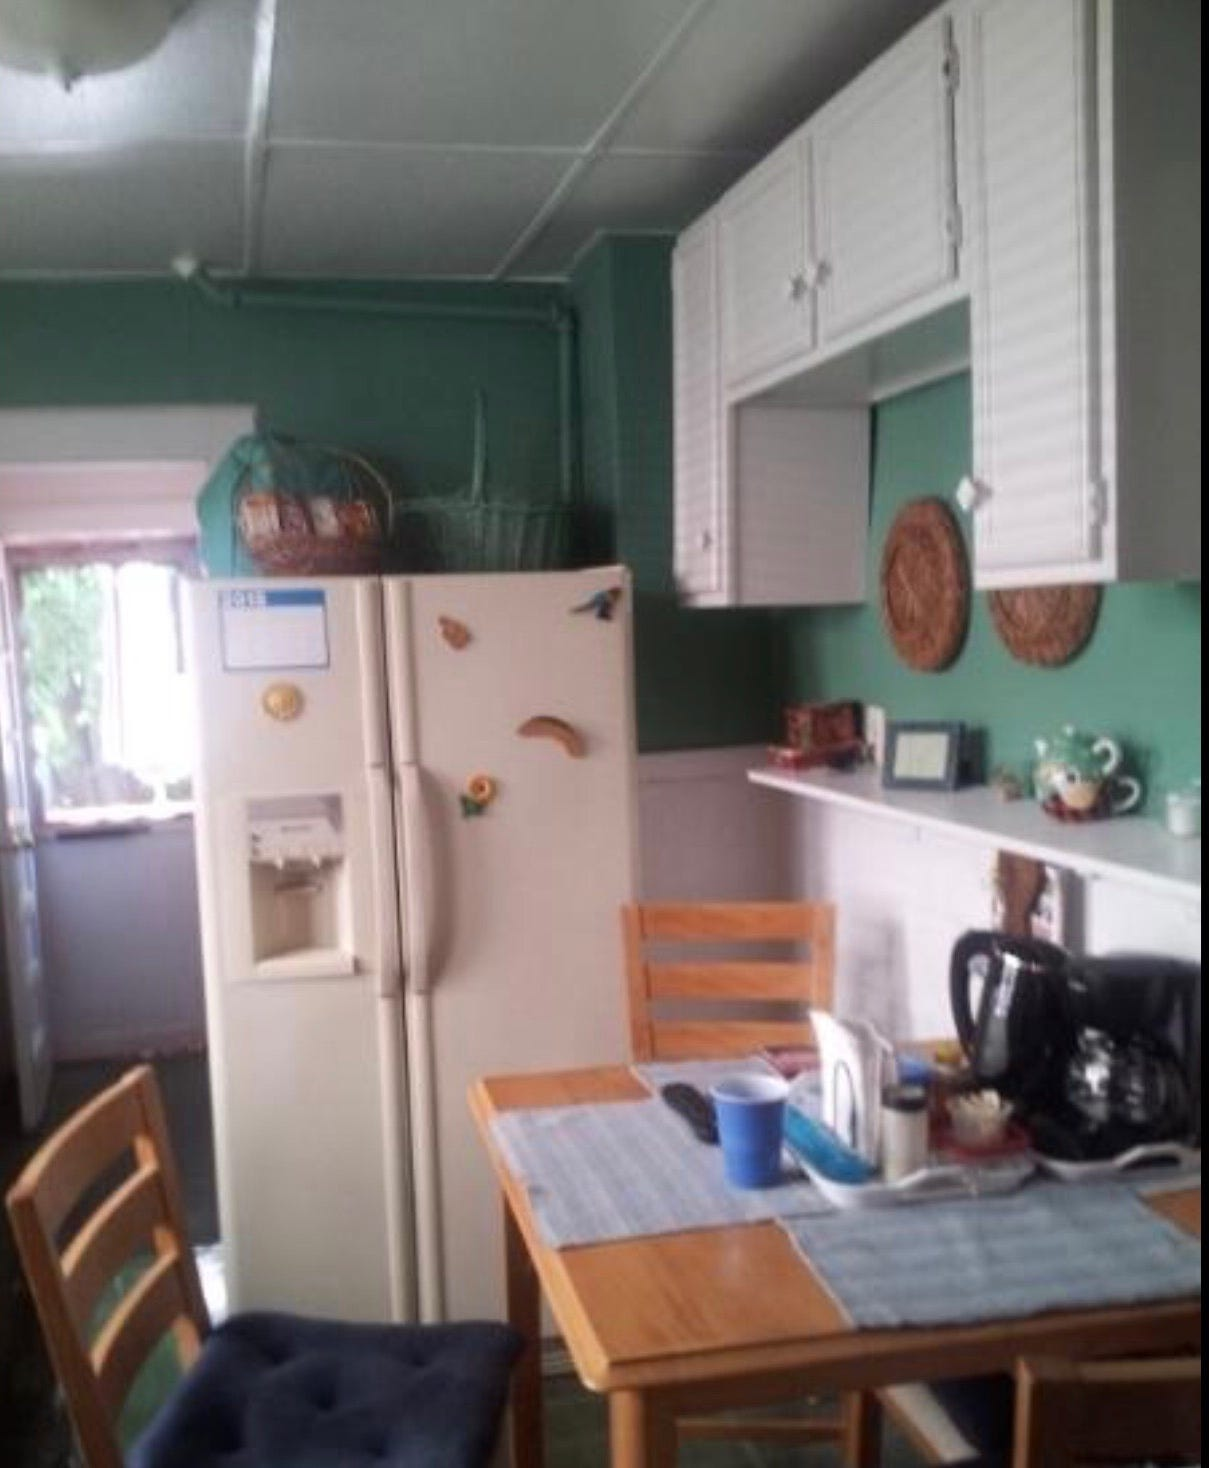 Inside Shaylah Brown's grandparents' kitchen in Hillside, New Jersey, where Shaylah Brown often sat around the table with her family on Friday nights.